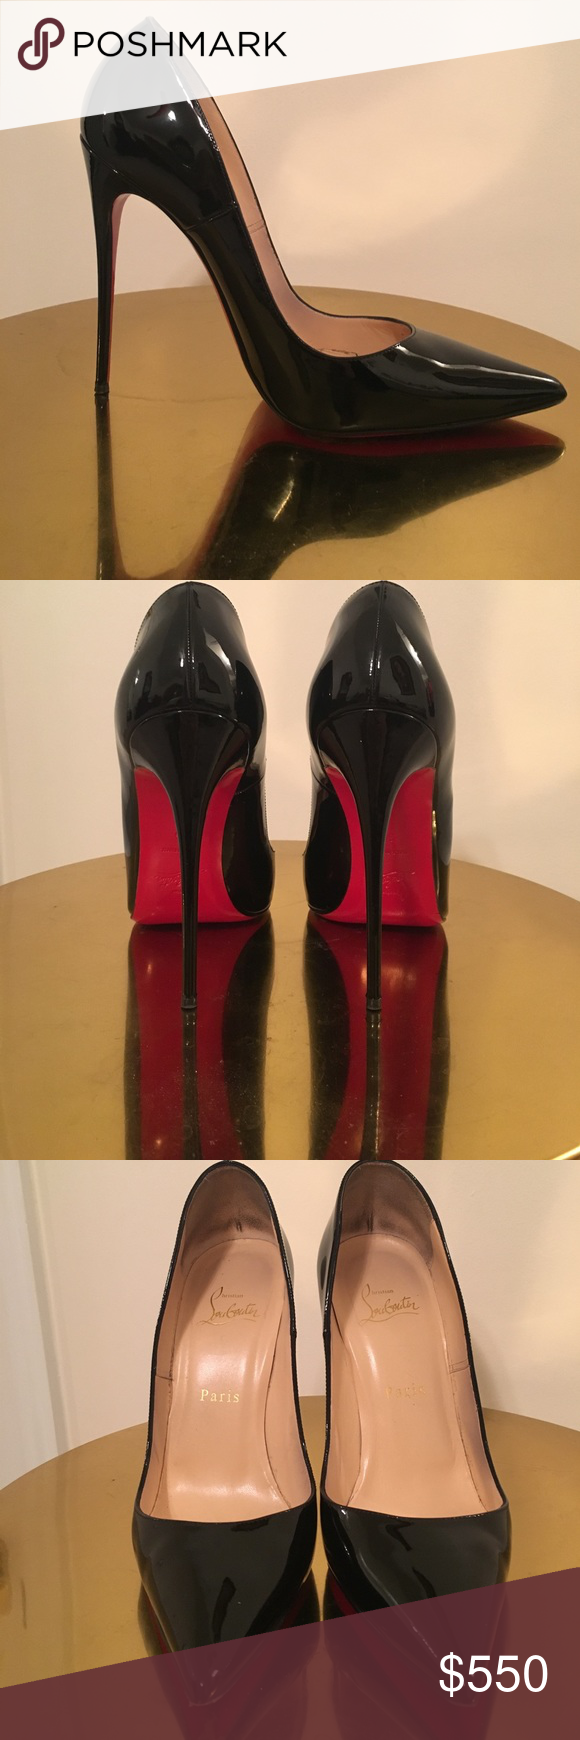 Christian Louboutin Red Alligator Shoes and Bag Gift 3D